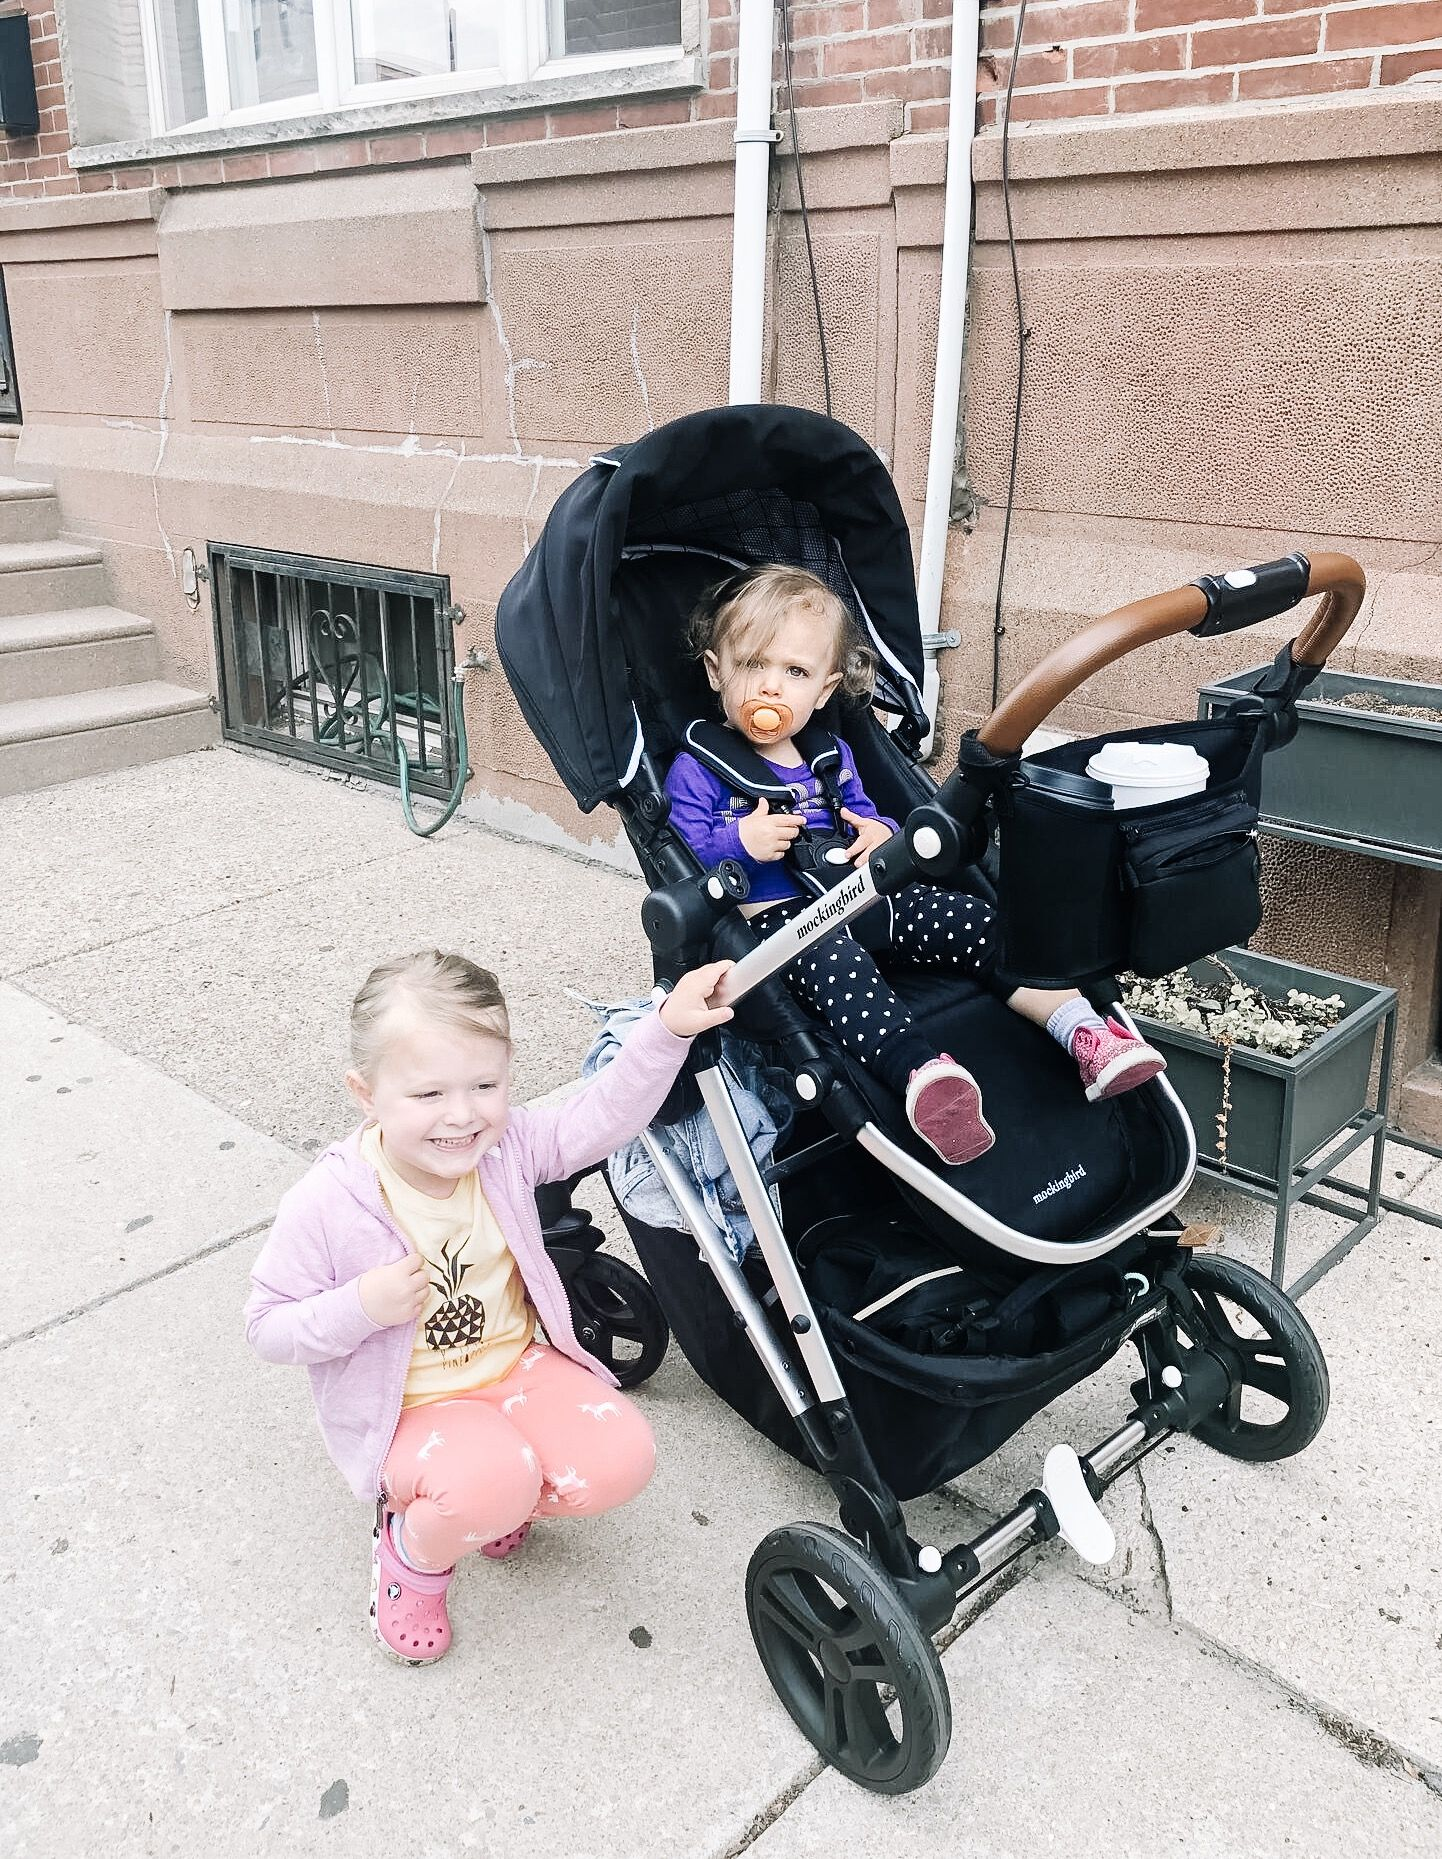 Our new favorite stroller, Mockingbird. It's cute, city